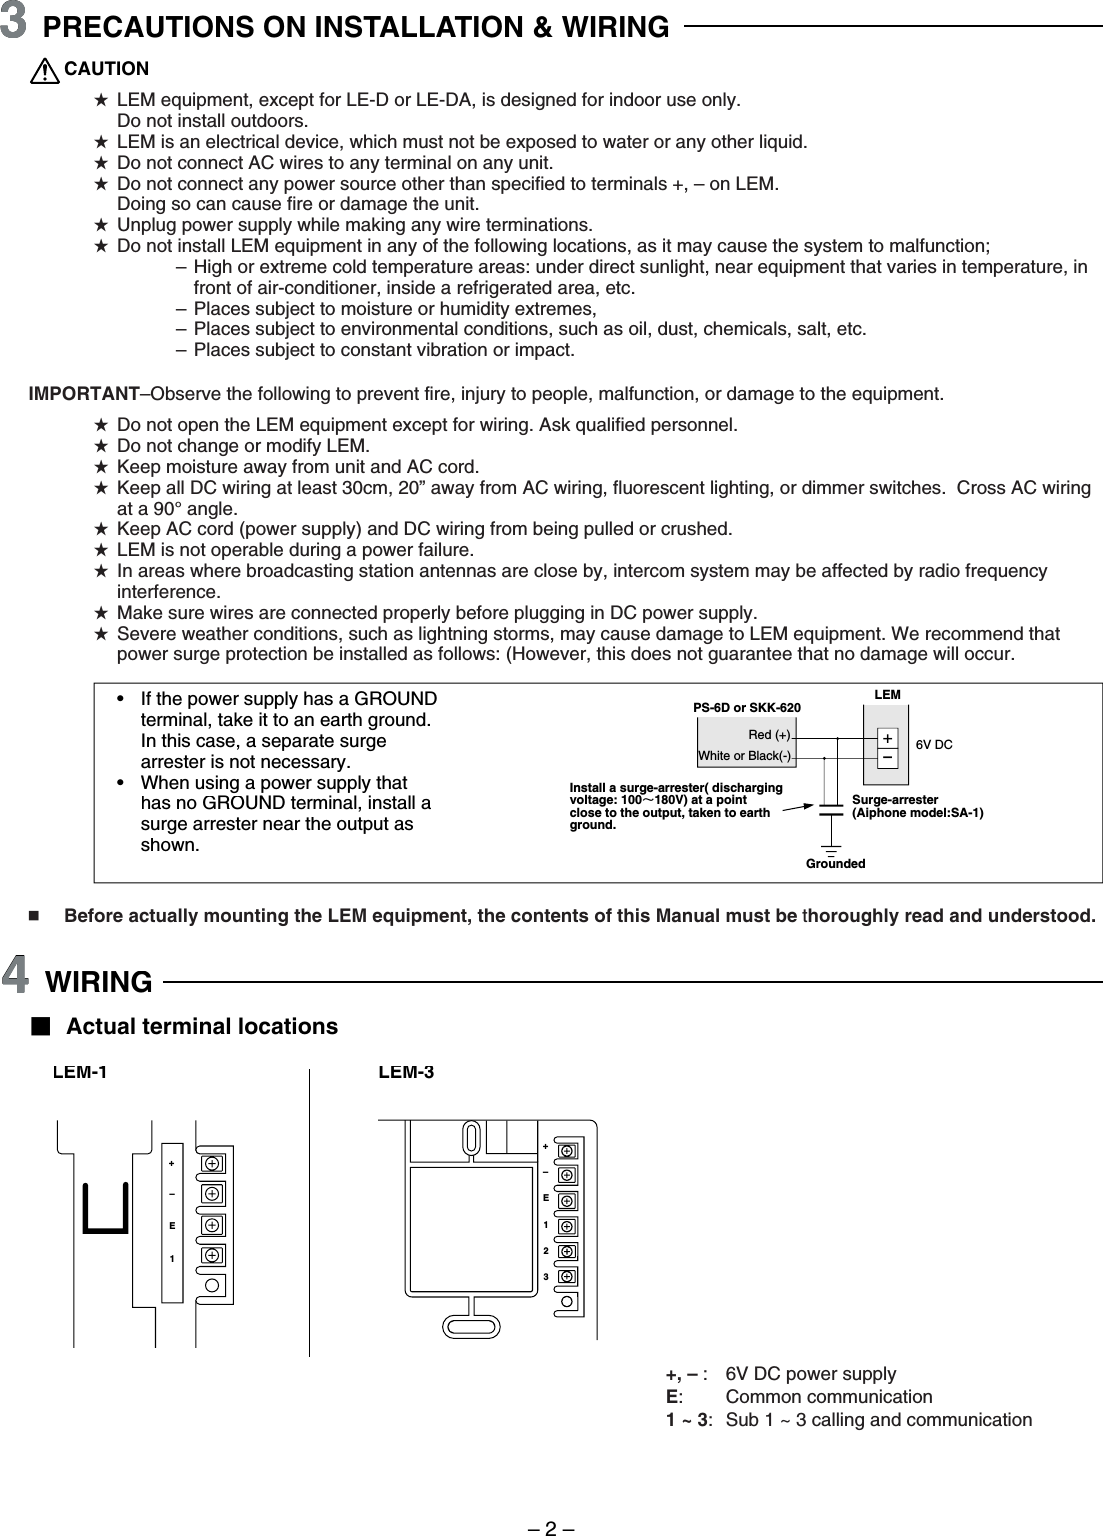 Aiphone Lem Dl Wiring Diagram on aiphone ps-2420ul, aiphone ry-18l, aiphone 1g ss le, aiphone lem-3, aiphone lem 1dlc, aiphone le-ssr, aiphone ry-3dl,